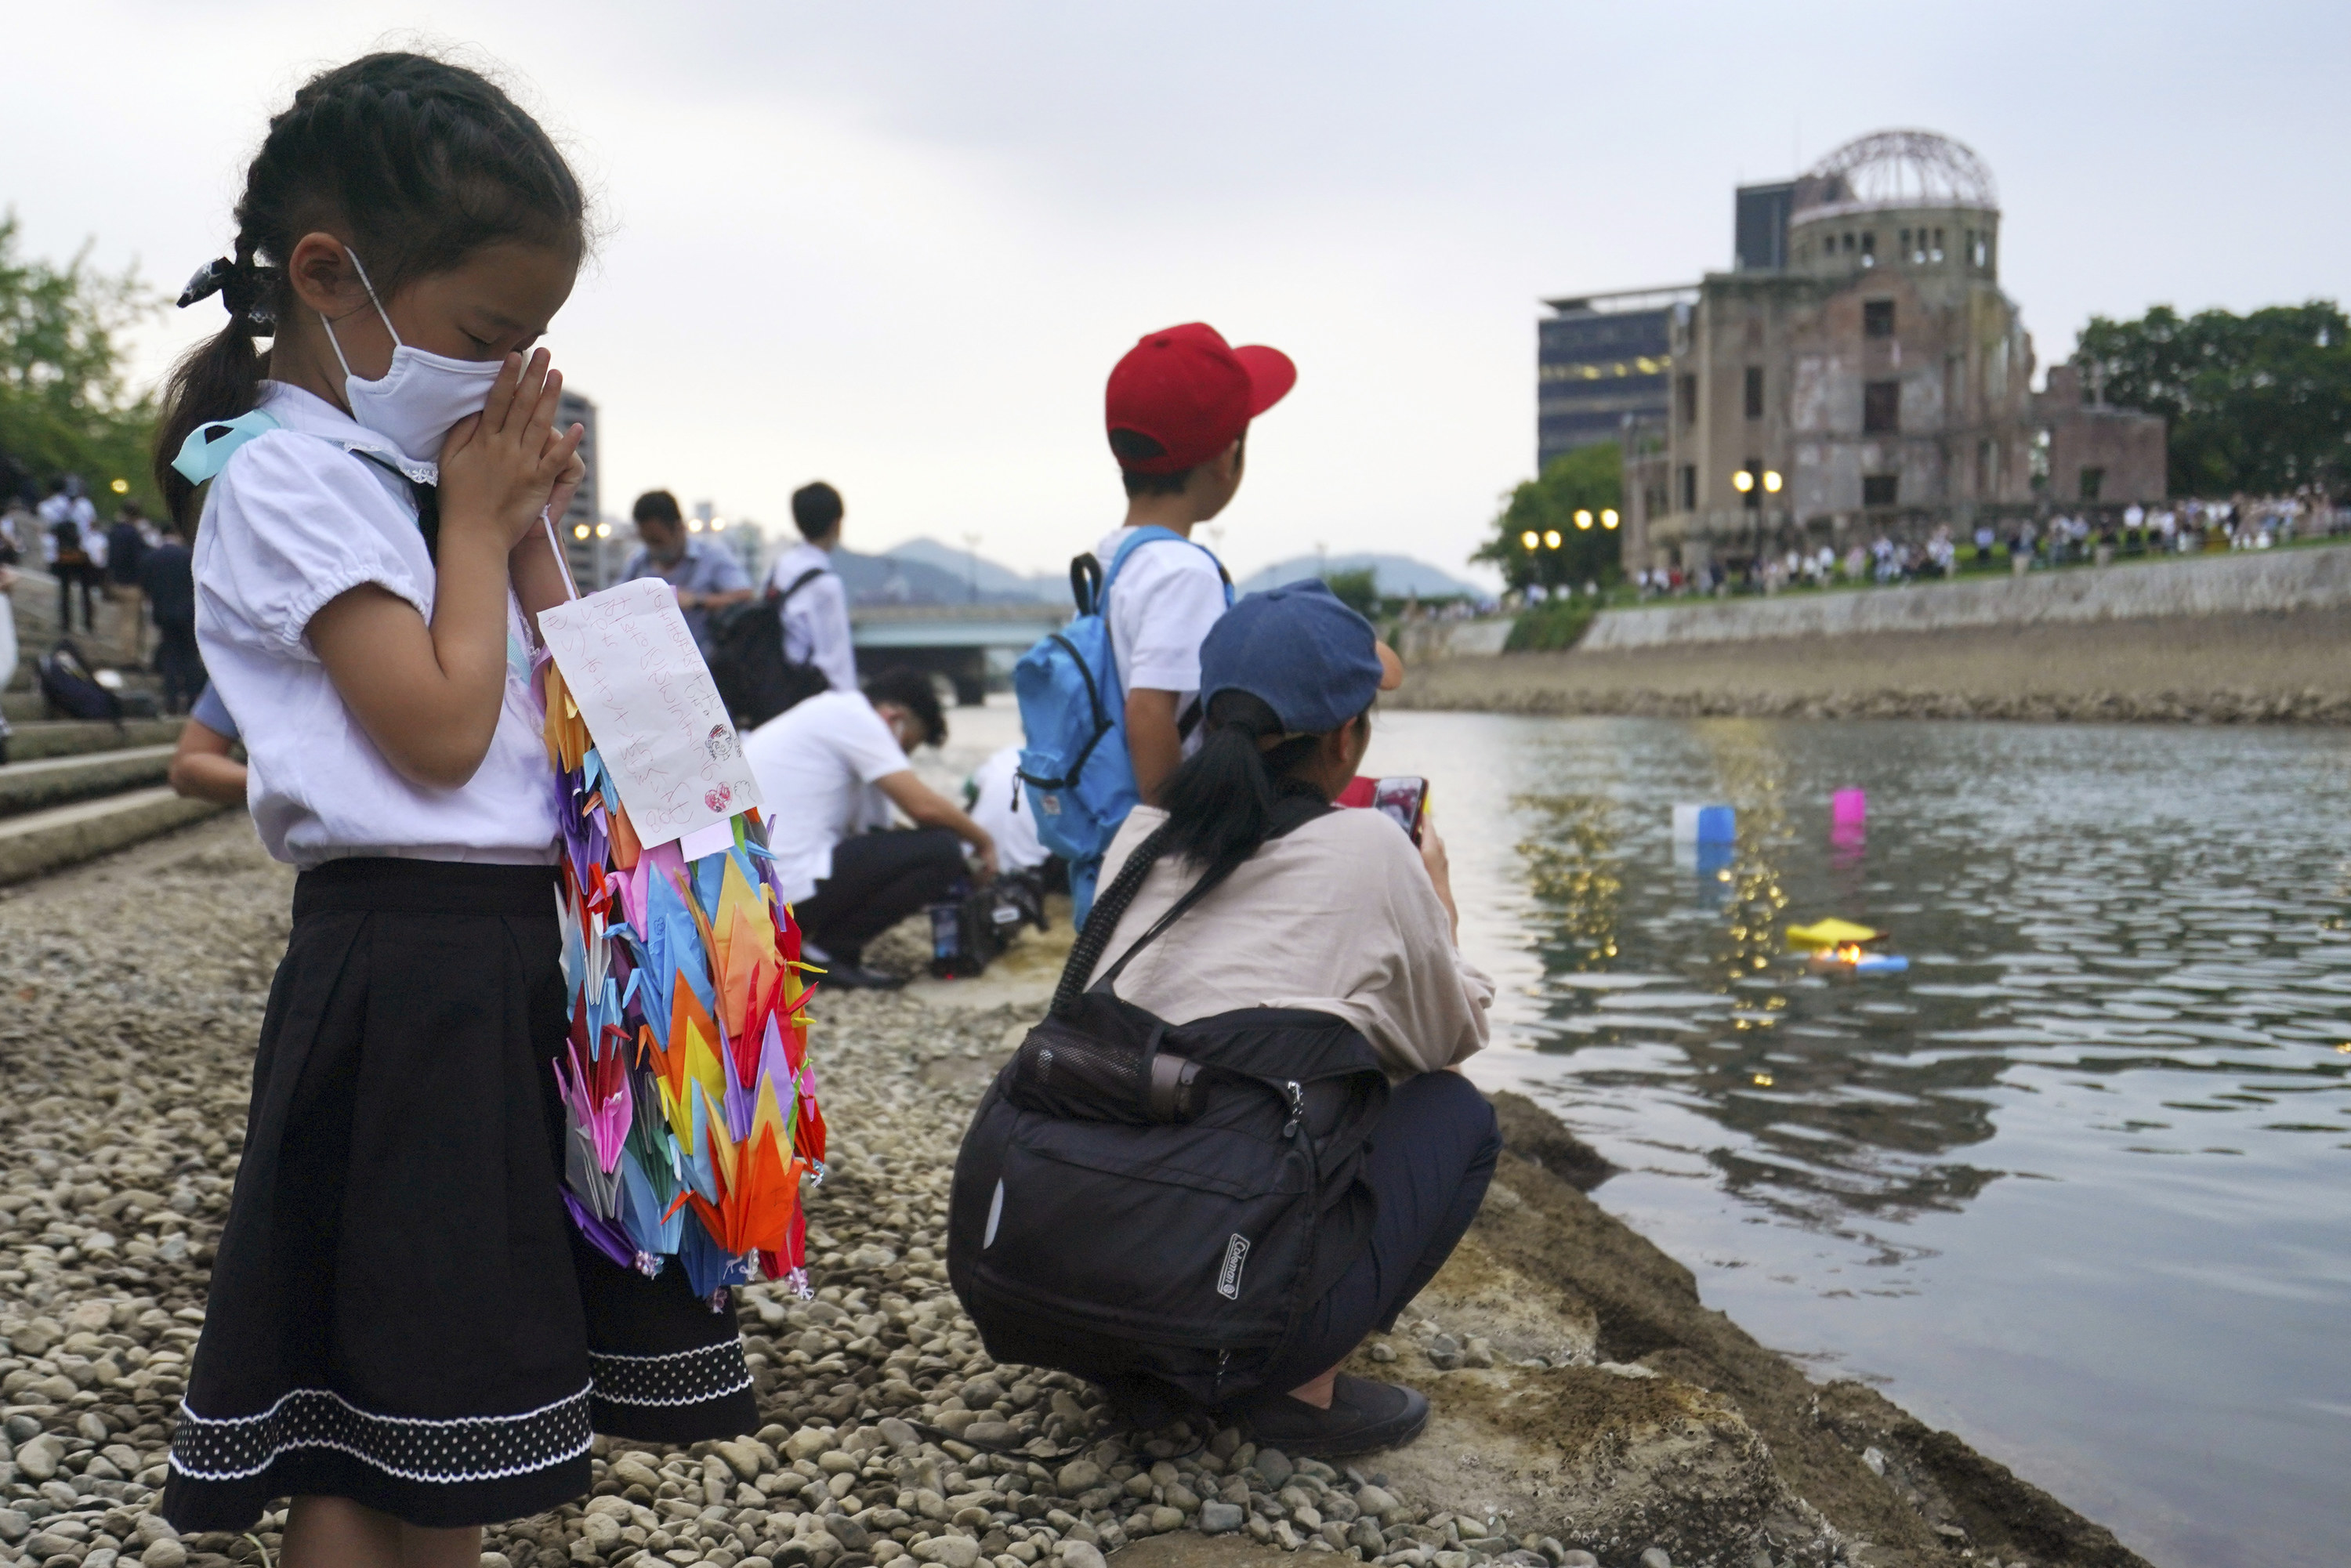 A small girl with her hands folded in front of her face holds colorful paper cranes standing along the waterline of a river where other children are gathered